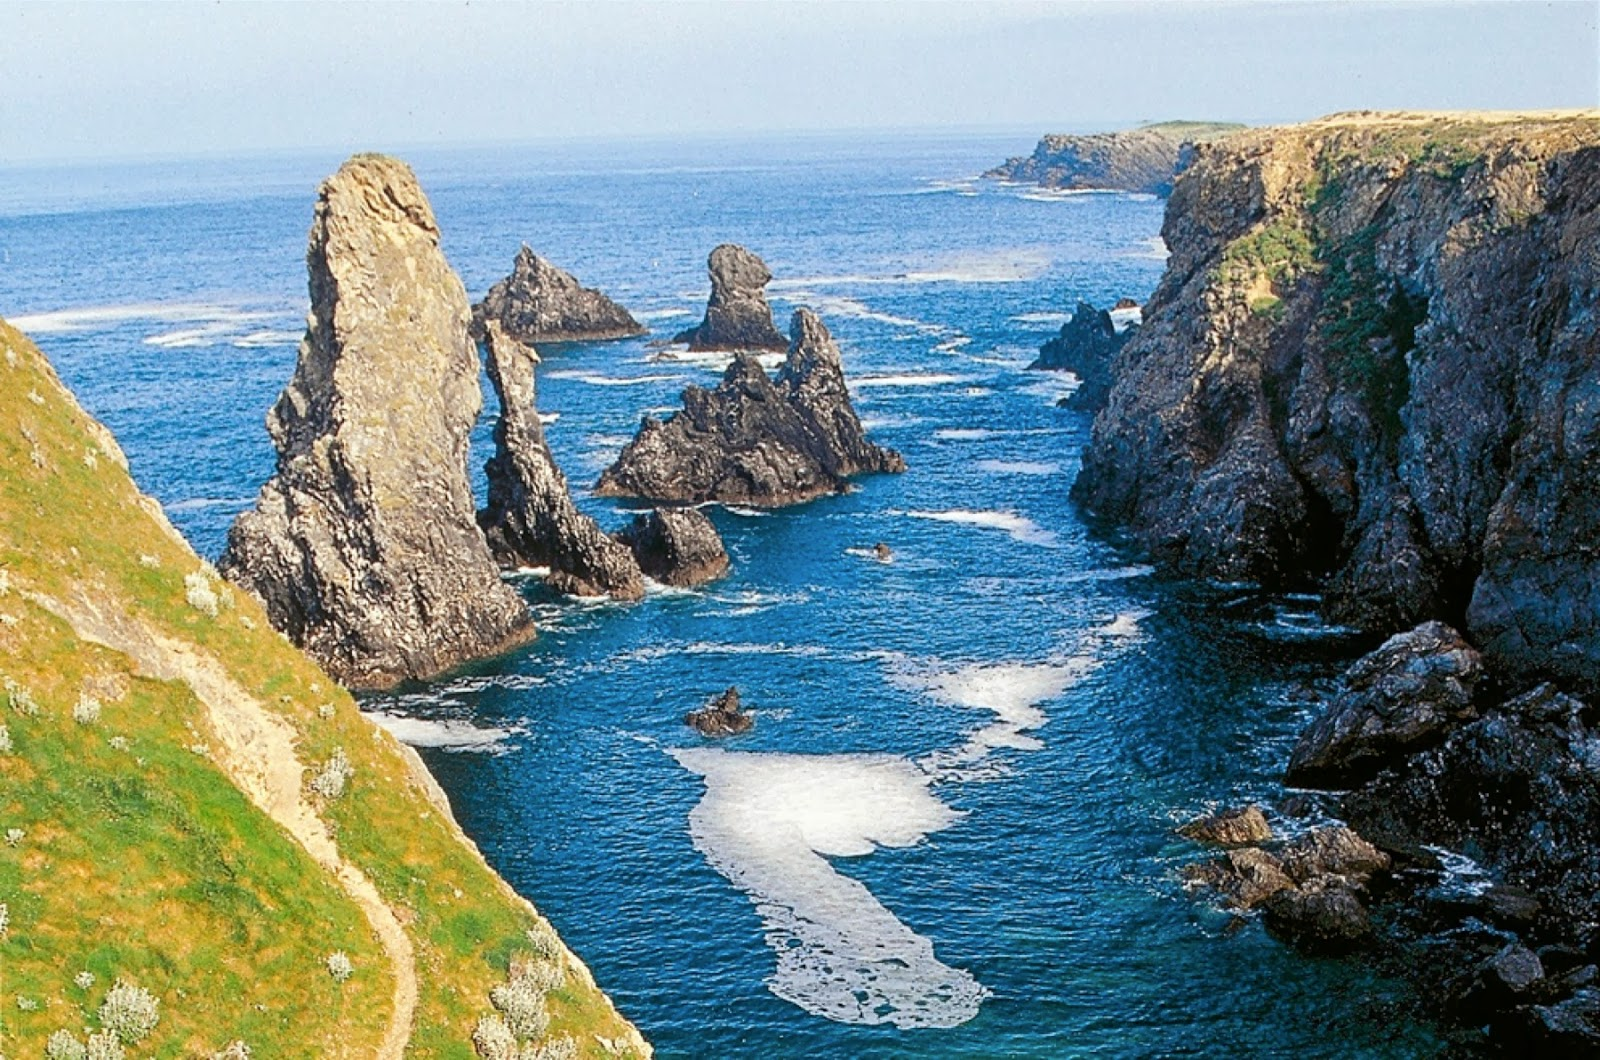 Belle Ile En Mer : a pagan place the pagan sites of europe remembered 24 belle le france ~ Maxctalentgroup.com Avis de Voitures